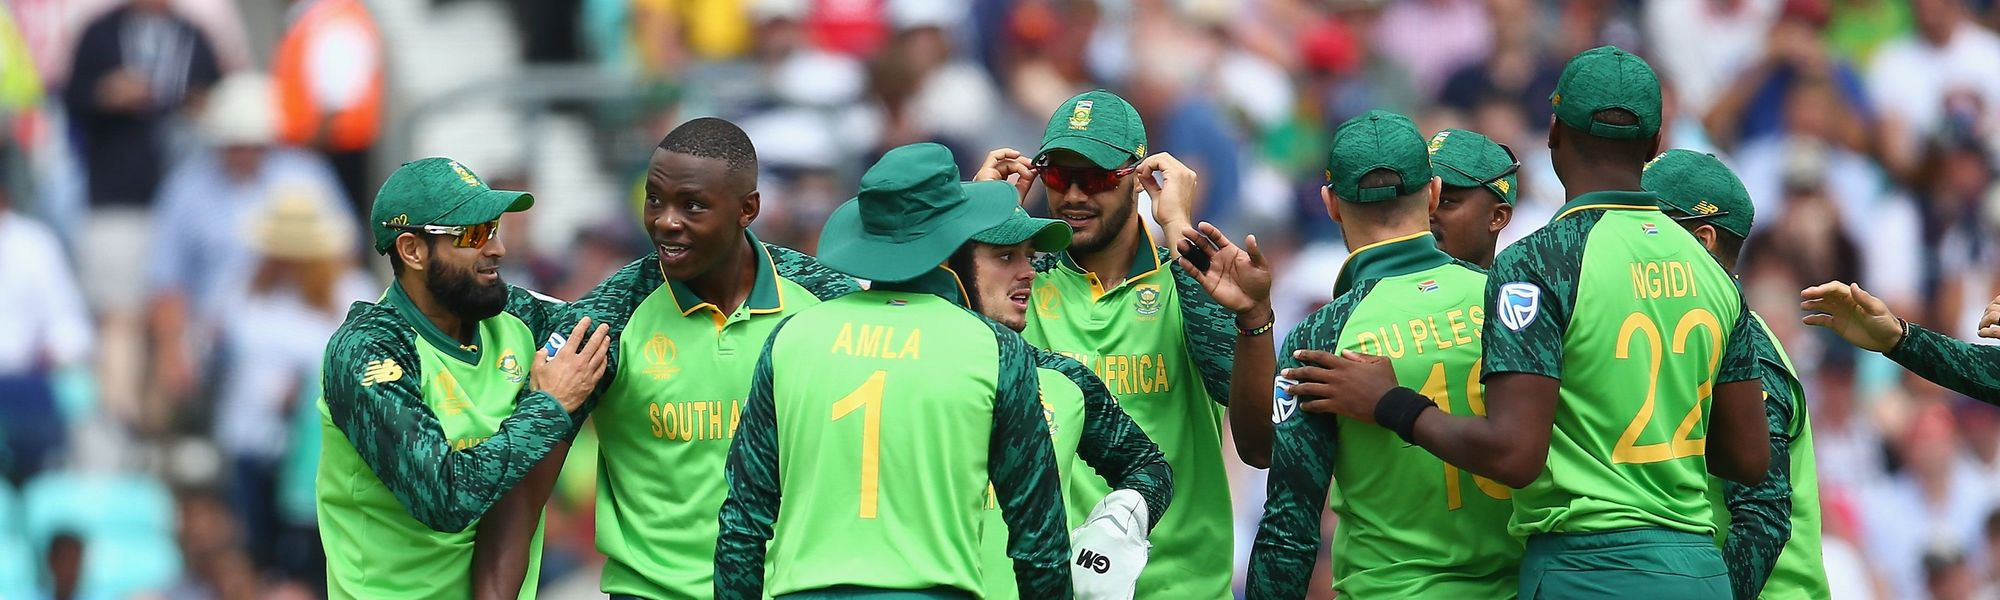 South Africa eye first win against resolute Bangladesh